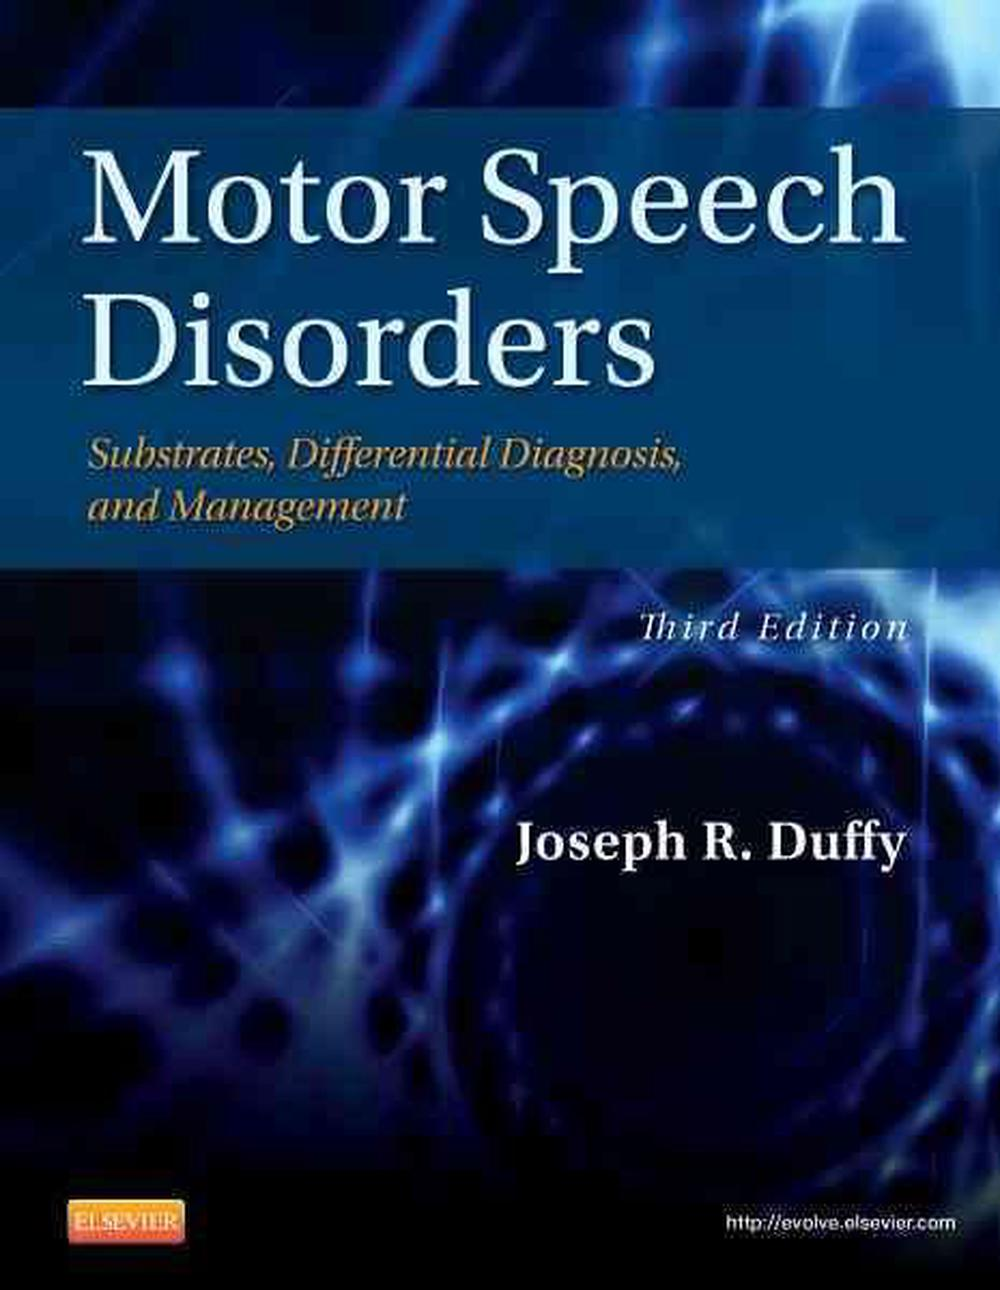 Motor speech disorders, 3rd edition by joseph r. Duffy, hardcover.